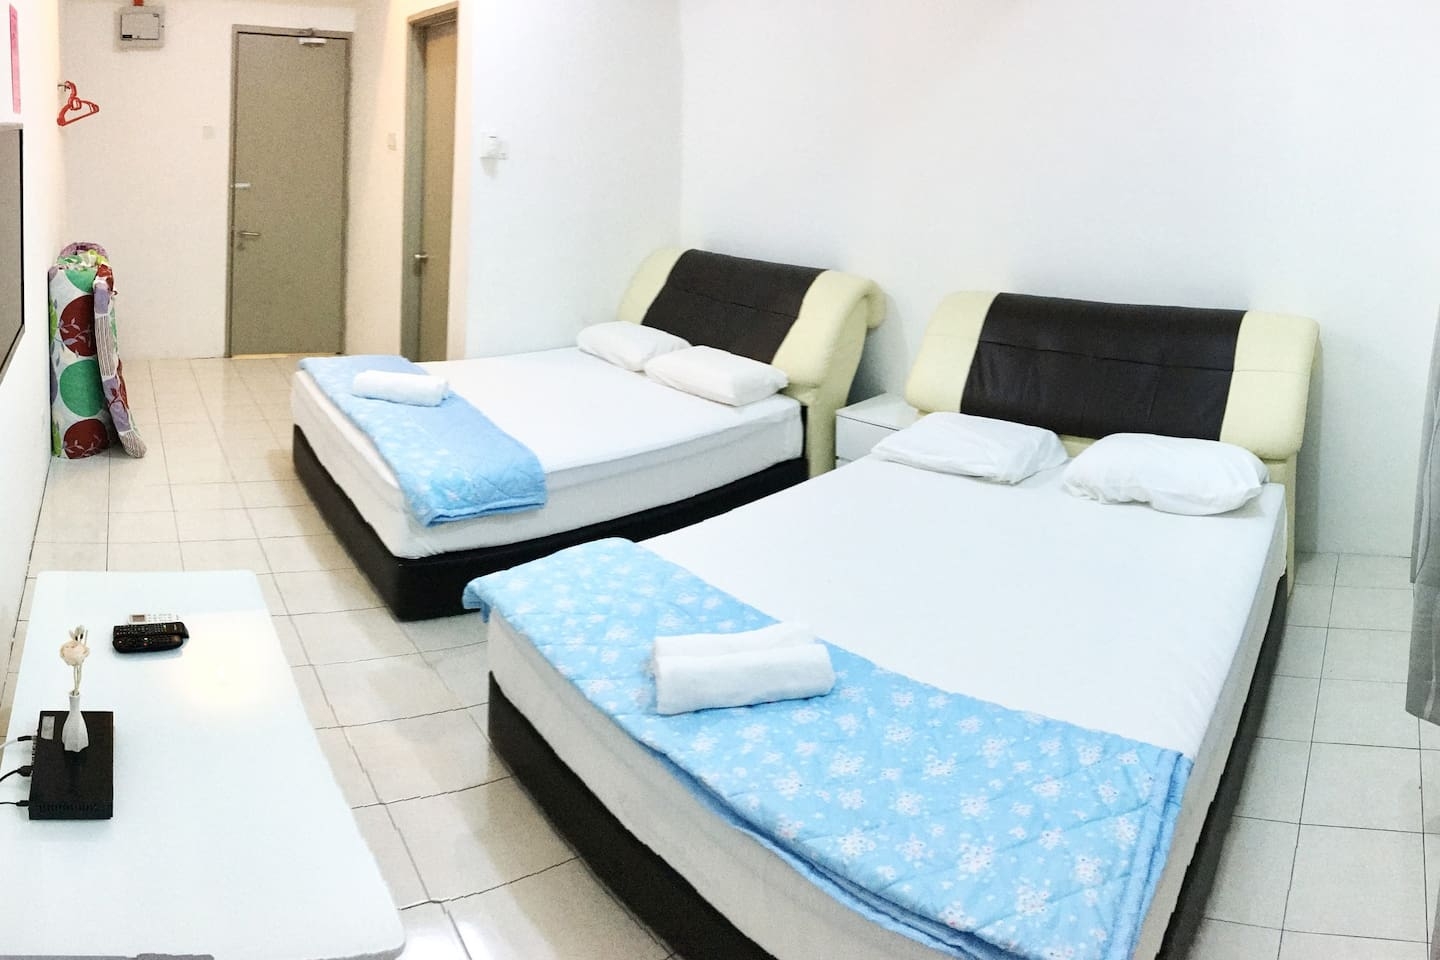 Two queen beds - One bathroom - Air conditioner - Television - Mini refrigerator  - Complimentary bottled water - Hair dryer - towels and soaps